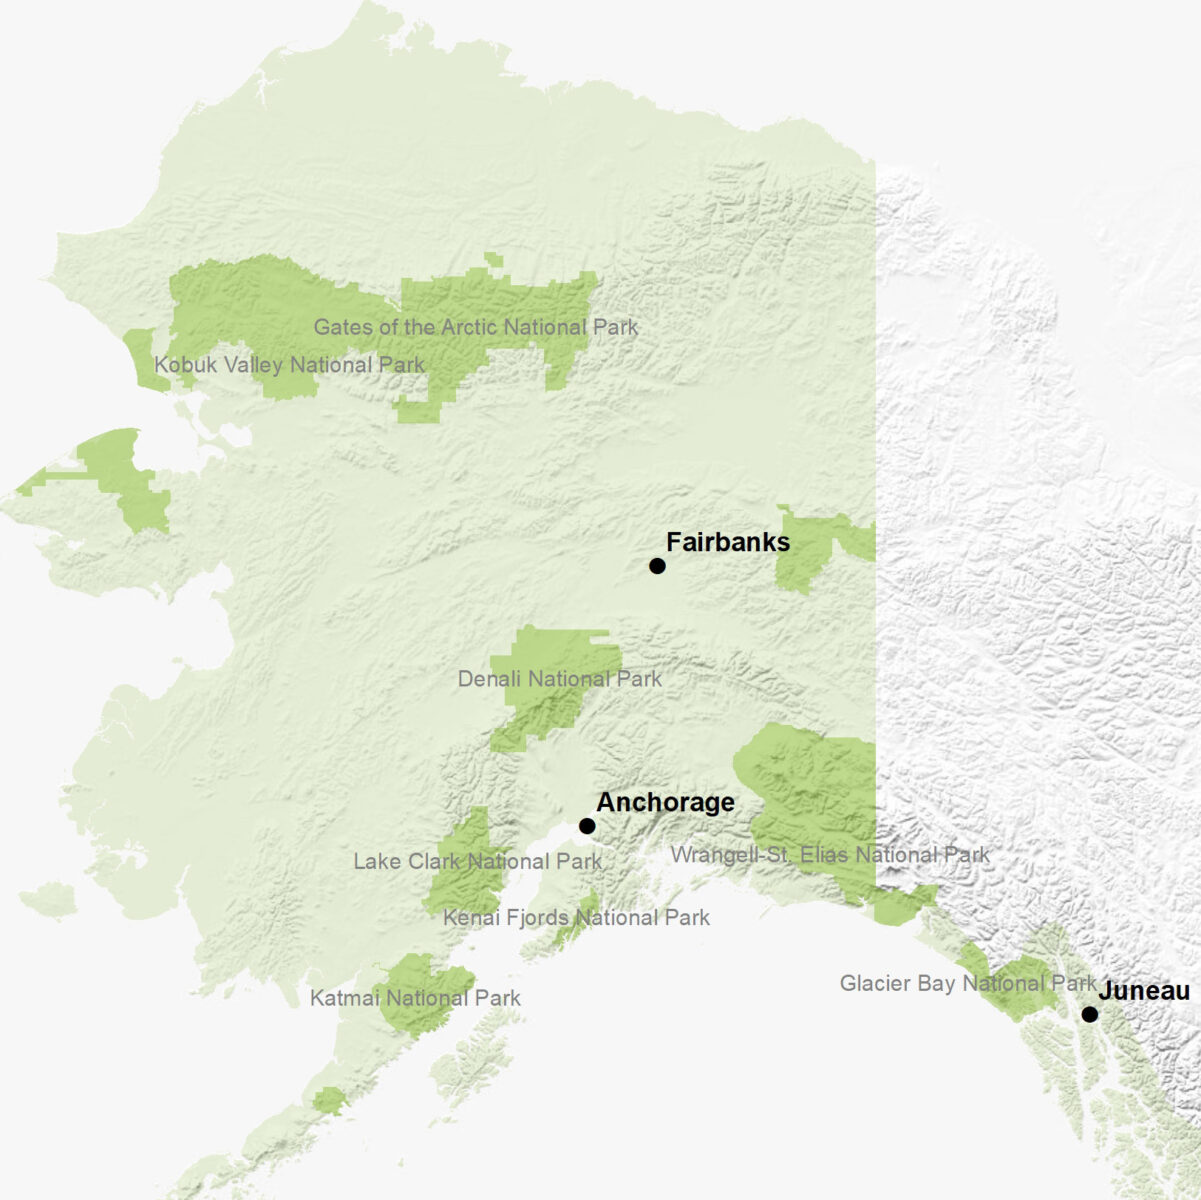 A map of the state of Alaska showing the National Parks and major cities